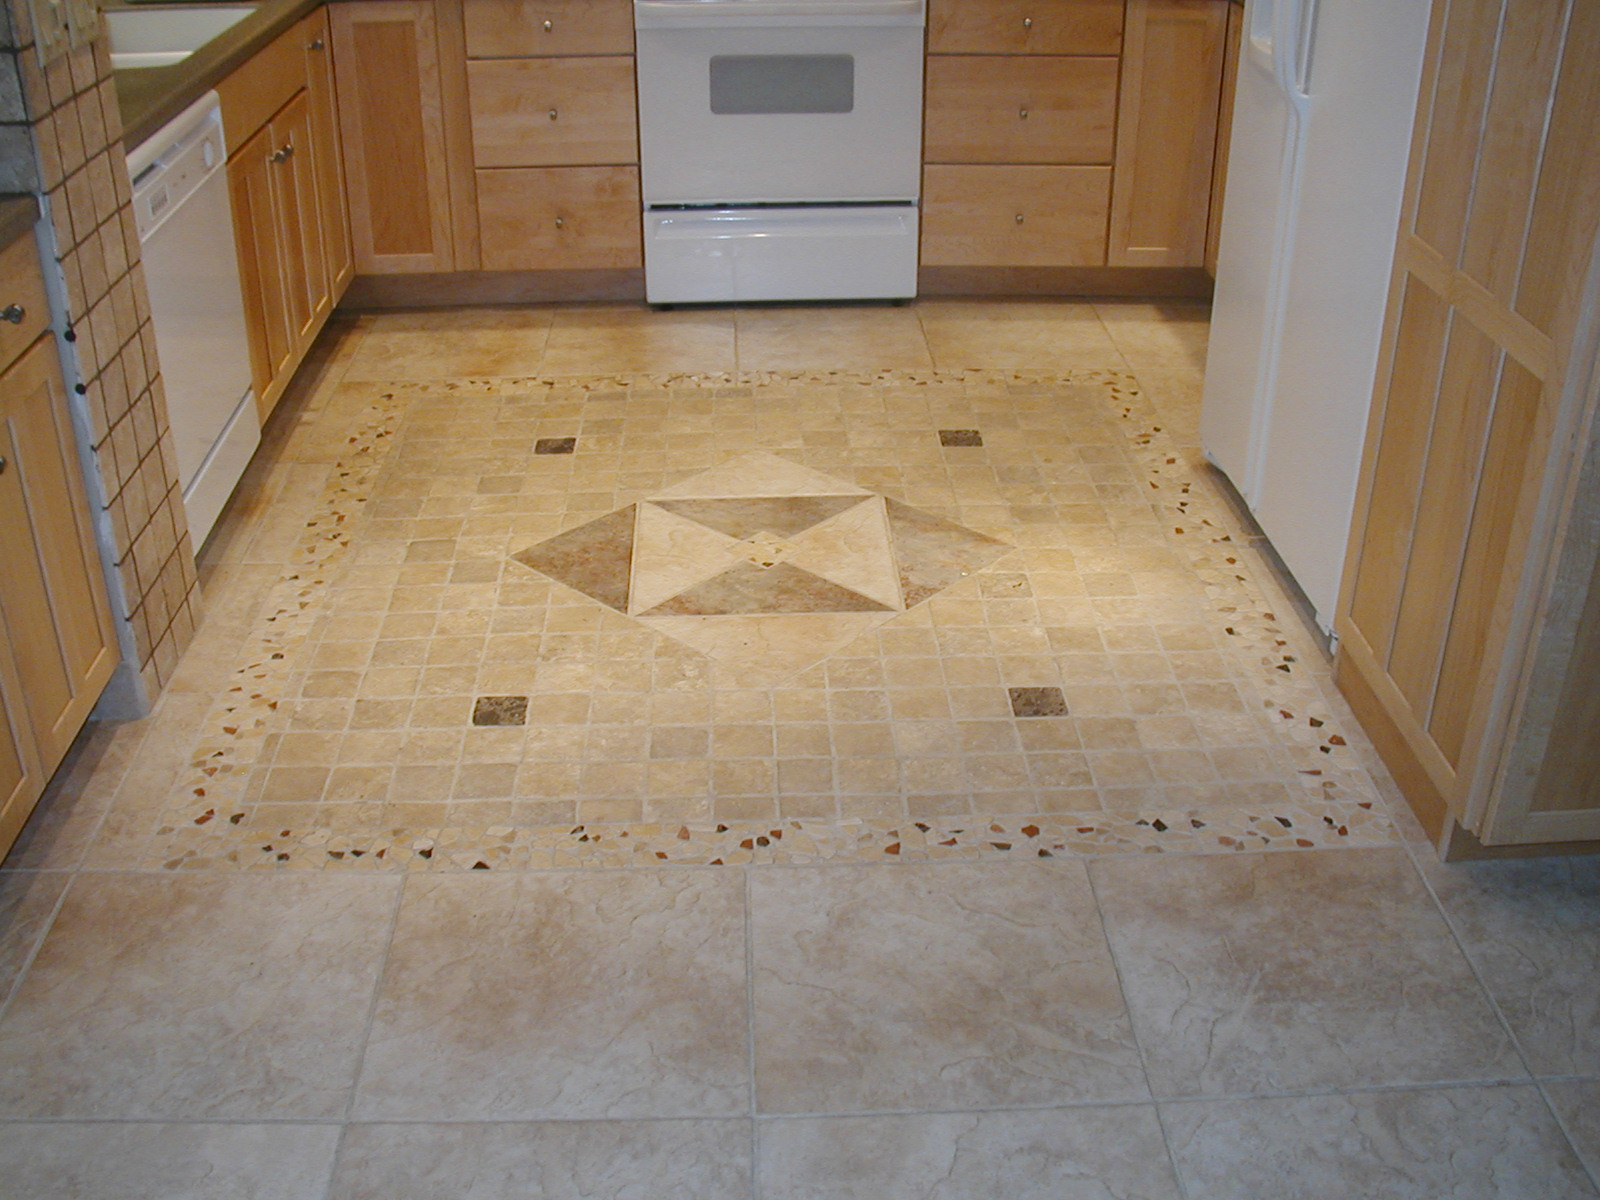 Complete home remodeling jmarvinhandyman - Small kitchen floor tile ideas ...